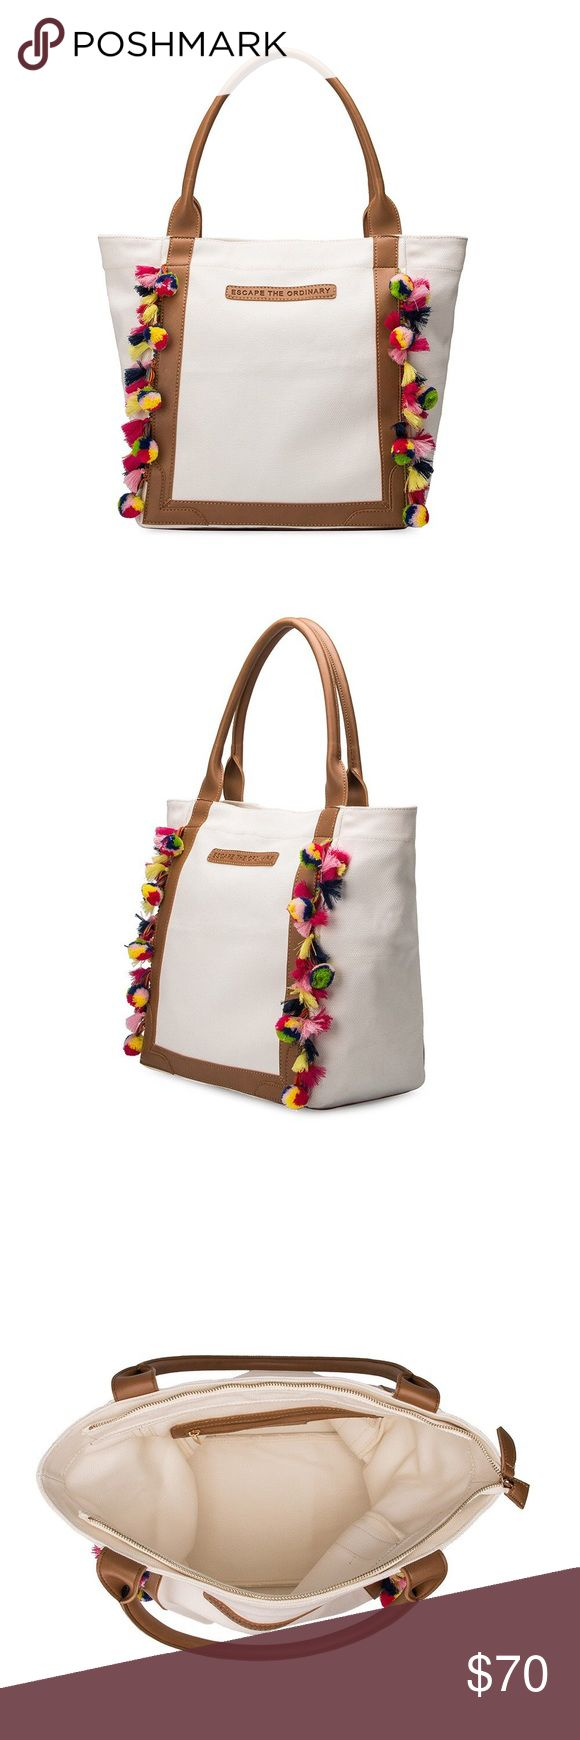 "Riviera Tote - Melie Bianco Premium Vegan Leather Handle and Frame Canvas Exterior/Interior Middle Zipper Closure Embossed ""Escape the Ordinary Interior Zipper Dimensions: 17.'L x 7'W x 12.5H' One Size/One Color Melie Bianco Bags Totes"